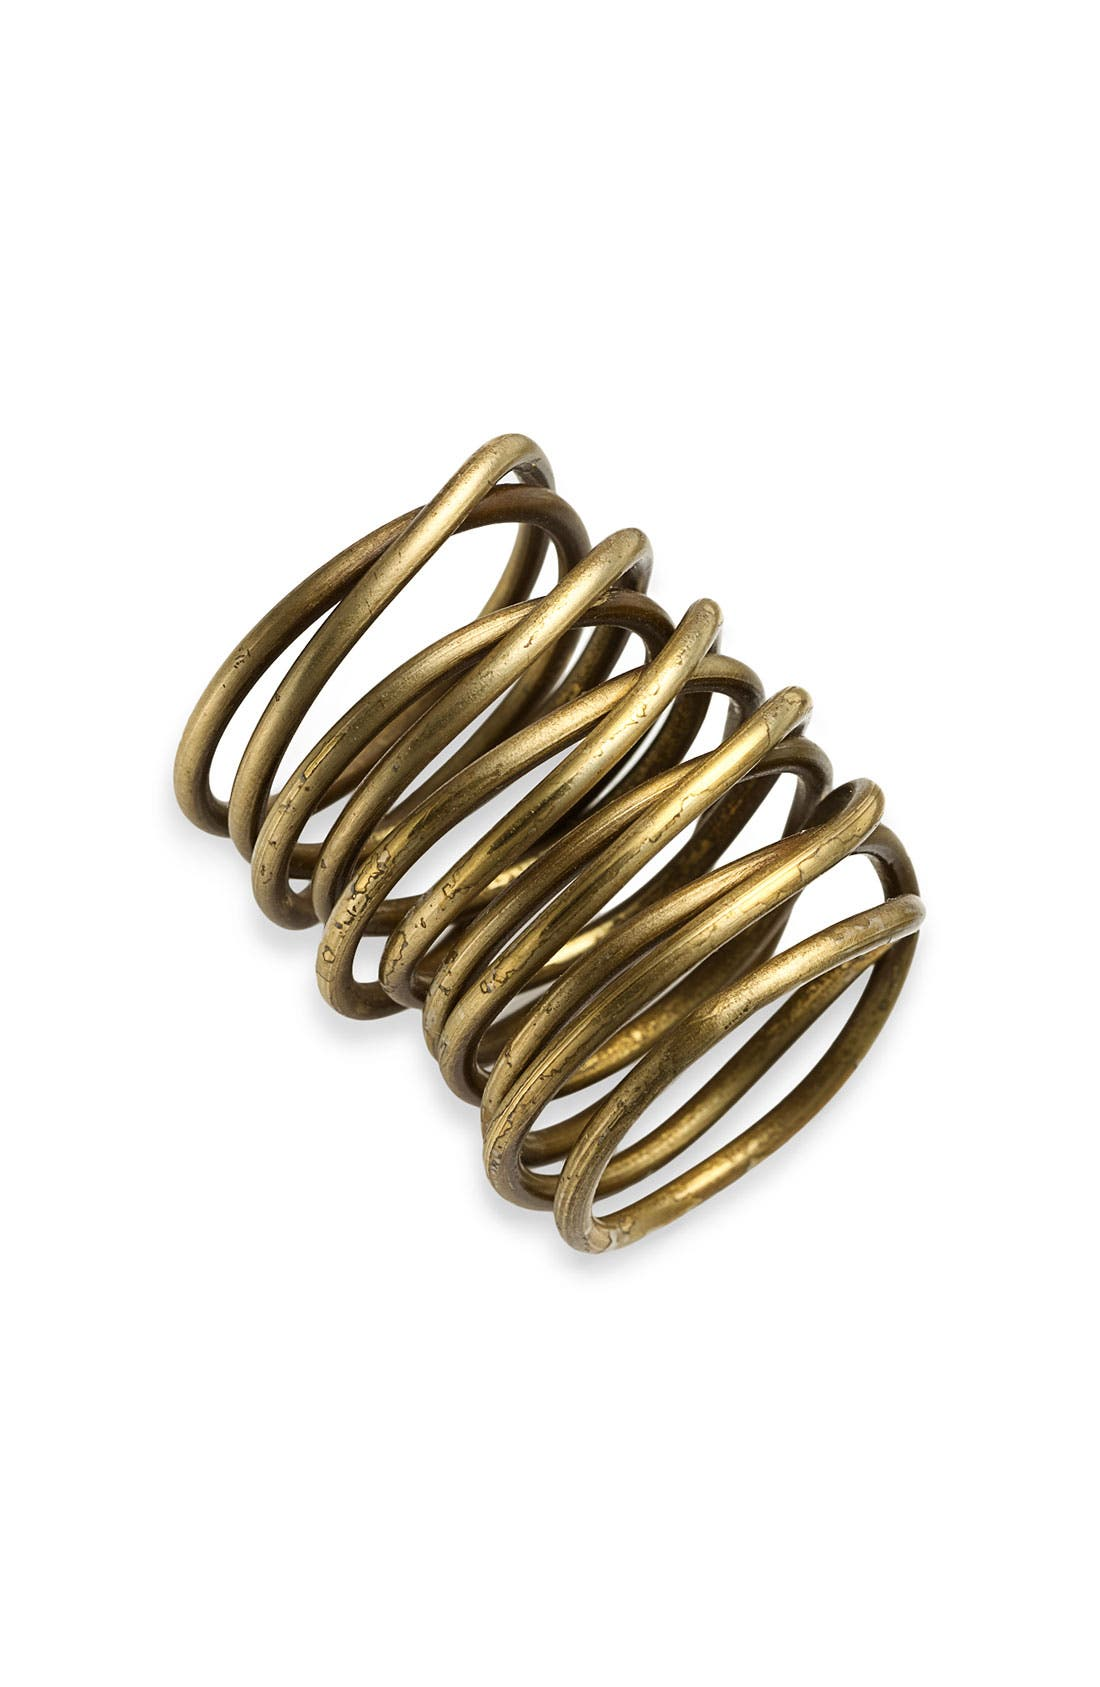 Alternate Image 1 Selected - Kelly Wearstler Twisted Brass Ring